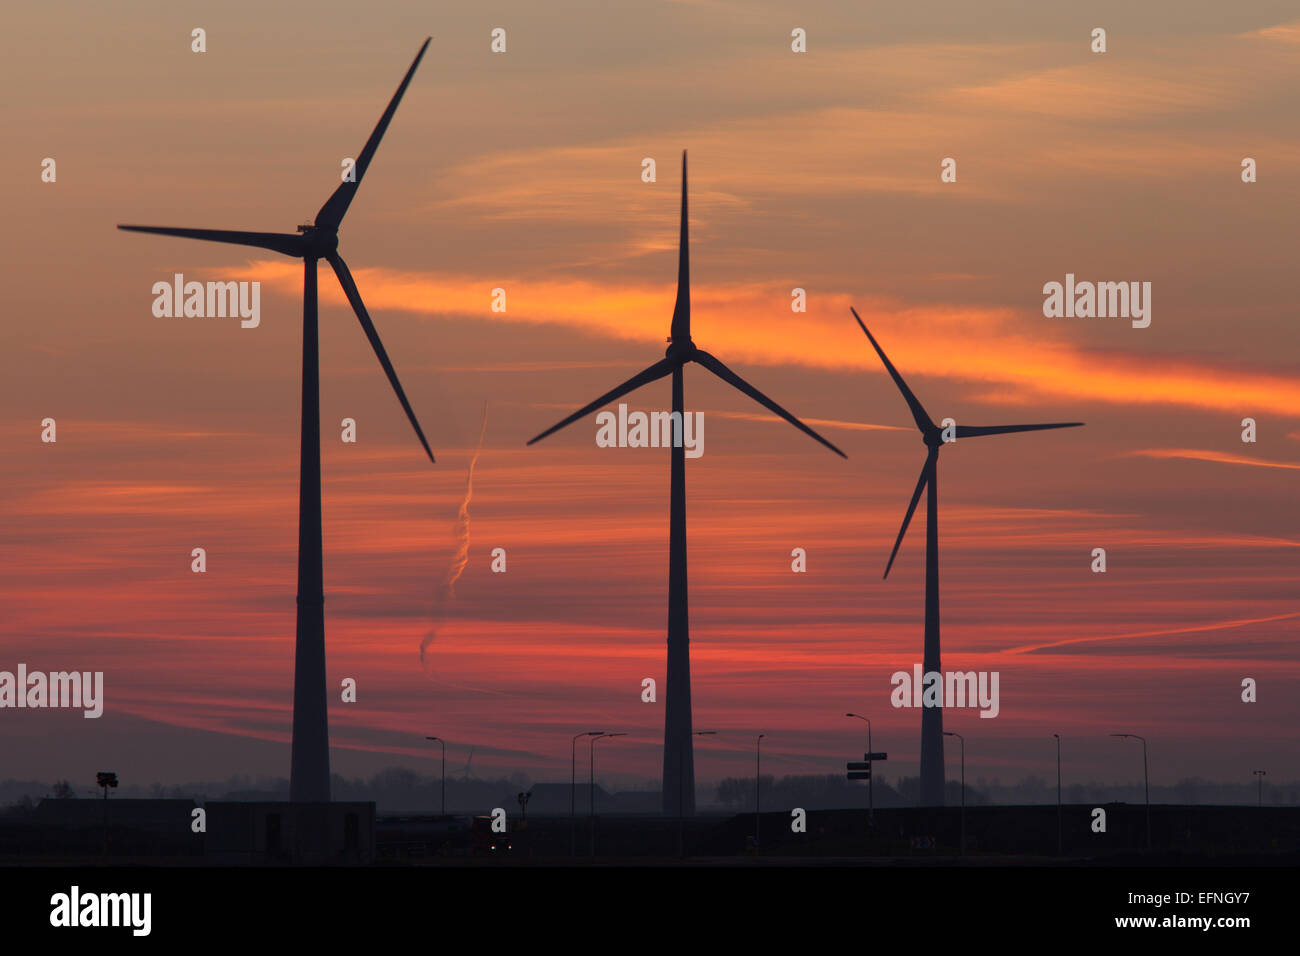 Sunset over the wind turbines in Eemshaven, The Netherlands - Stock Image